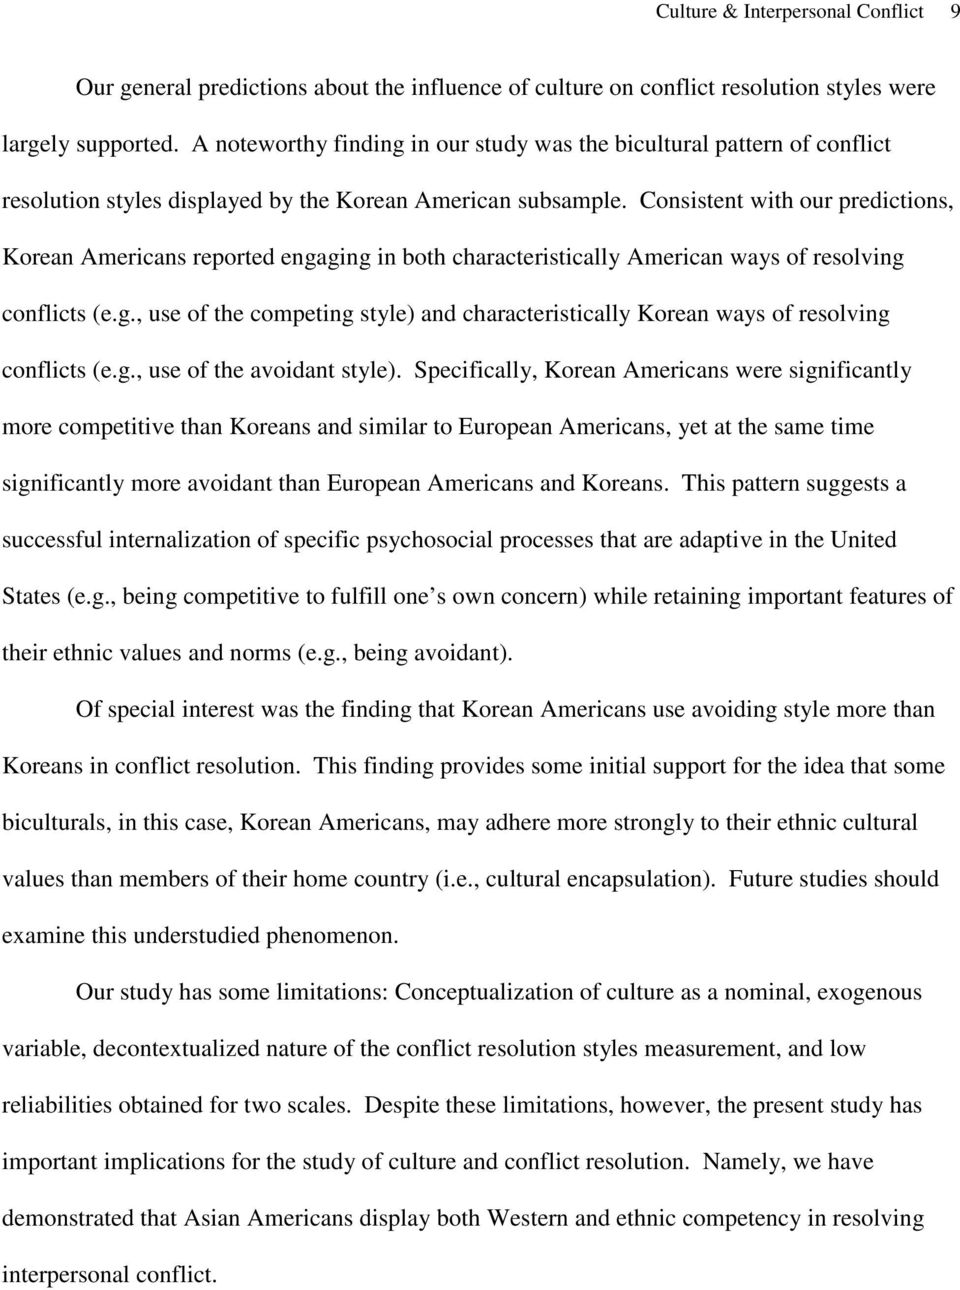 Consistent with our predictions, Korean Americans reported engaging in both characteristically American ways of resolving conflicts (e.g., use of the competing style) and characteristically Korean ways of resolving conflicts (e.